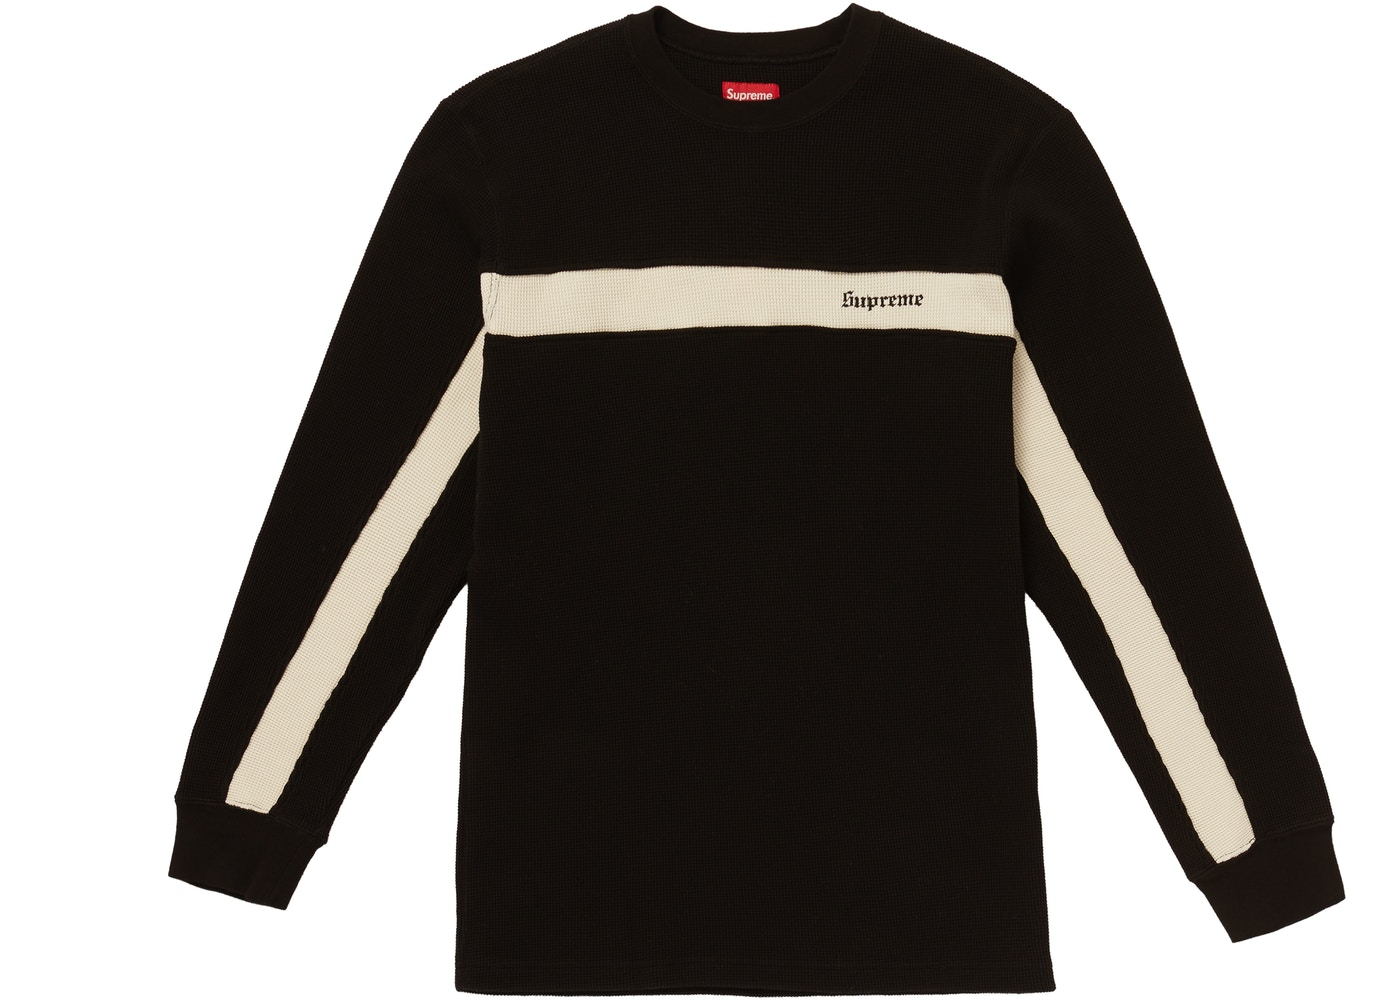 online store 40c01 66f5a Supreme  Supreme Panel Stripe Waffle Thermal Black ...